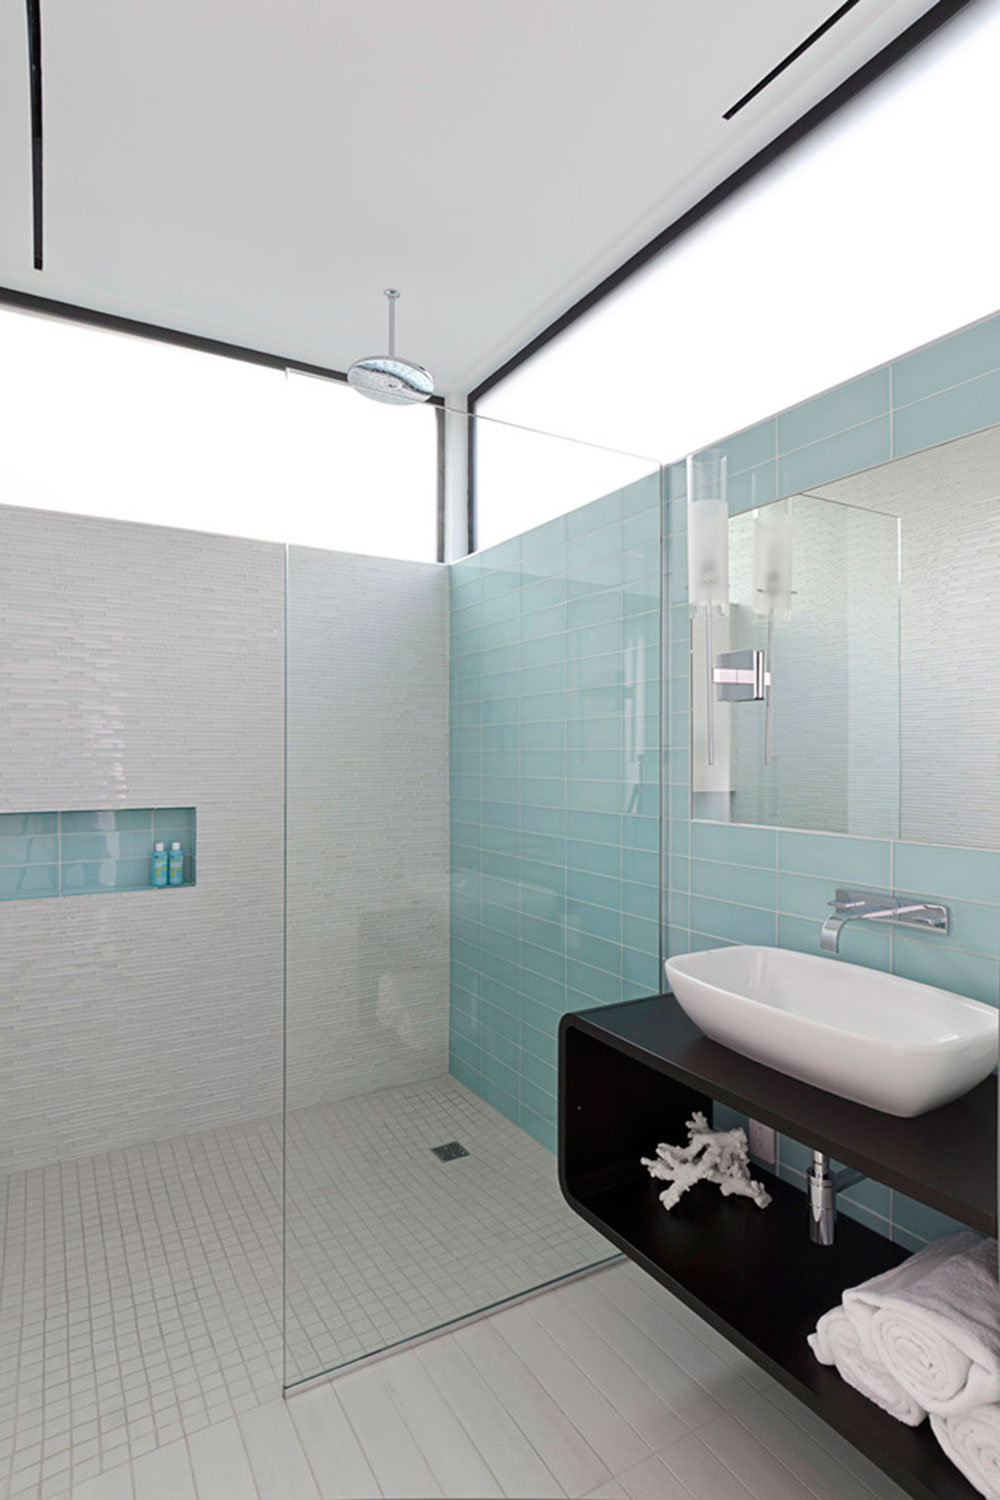 Photos-and-examples-of-choosing-the-best-bathroom-tiles-4 photos and examples of choosing the best bathroom tiles